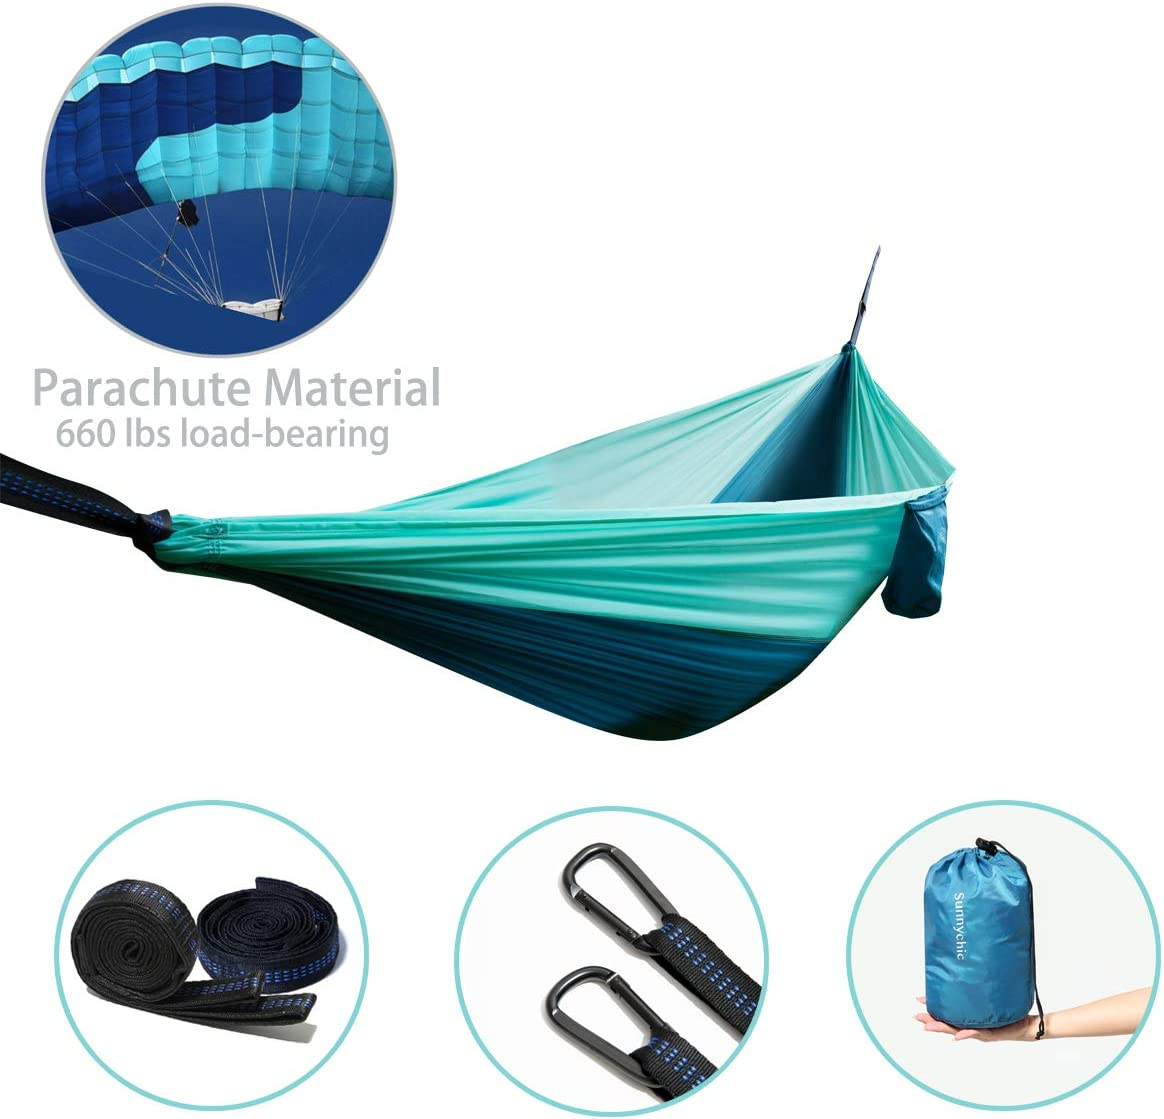 Sunnychic Outfitters Hammock Camping, Ultra-Light Breathable Single Double with 2 Tree Straps,Capacity 660LBS for Outdoor Backpacking Survival Travel Beach Portable